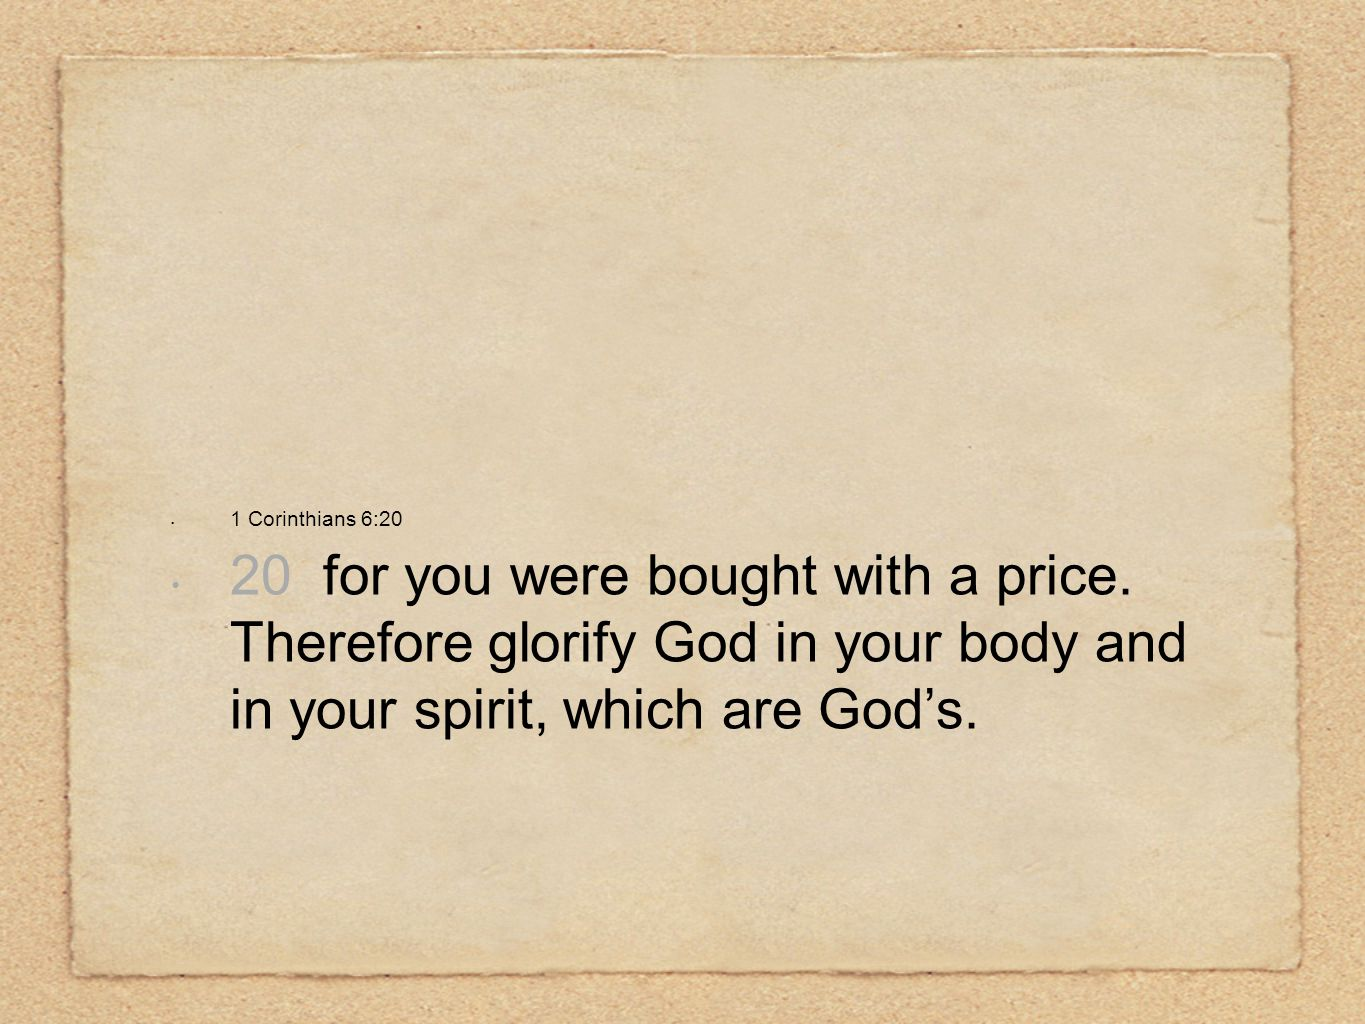 1 Corinthians 6:20 20 for you were bought with a price. Therefore glorify God in your body and in your spirit, which are God's.